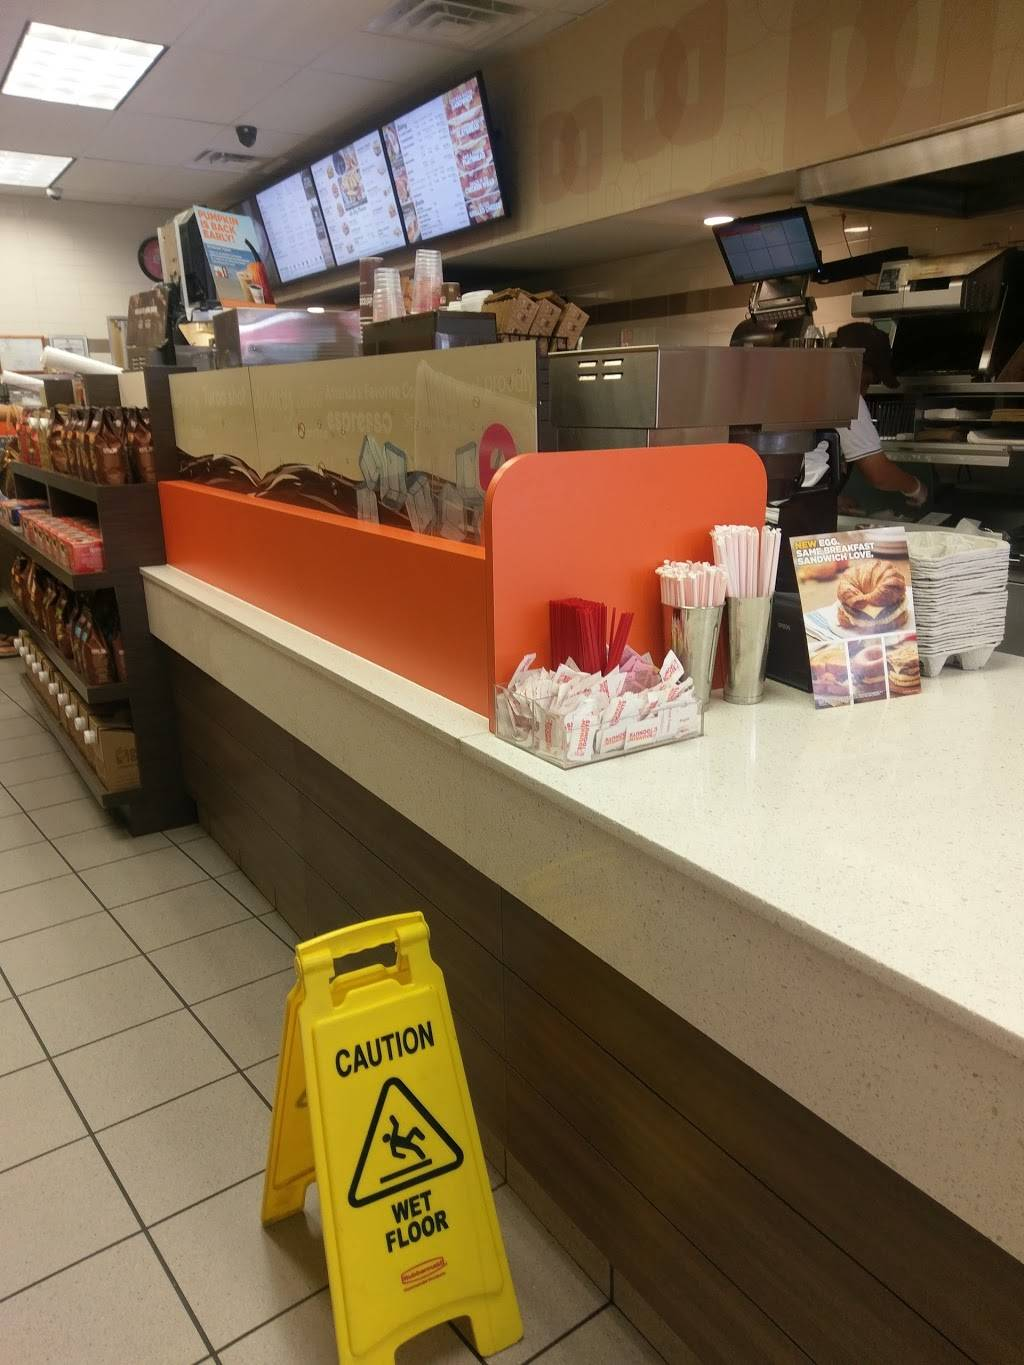 Dunkin Donuts | cafe | 738 Anderson Ave, Cliffside Park, NJ 07010, USA | 2013130550 OR +1 201-313-0550